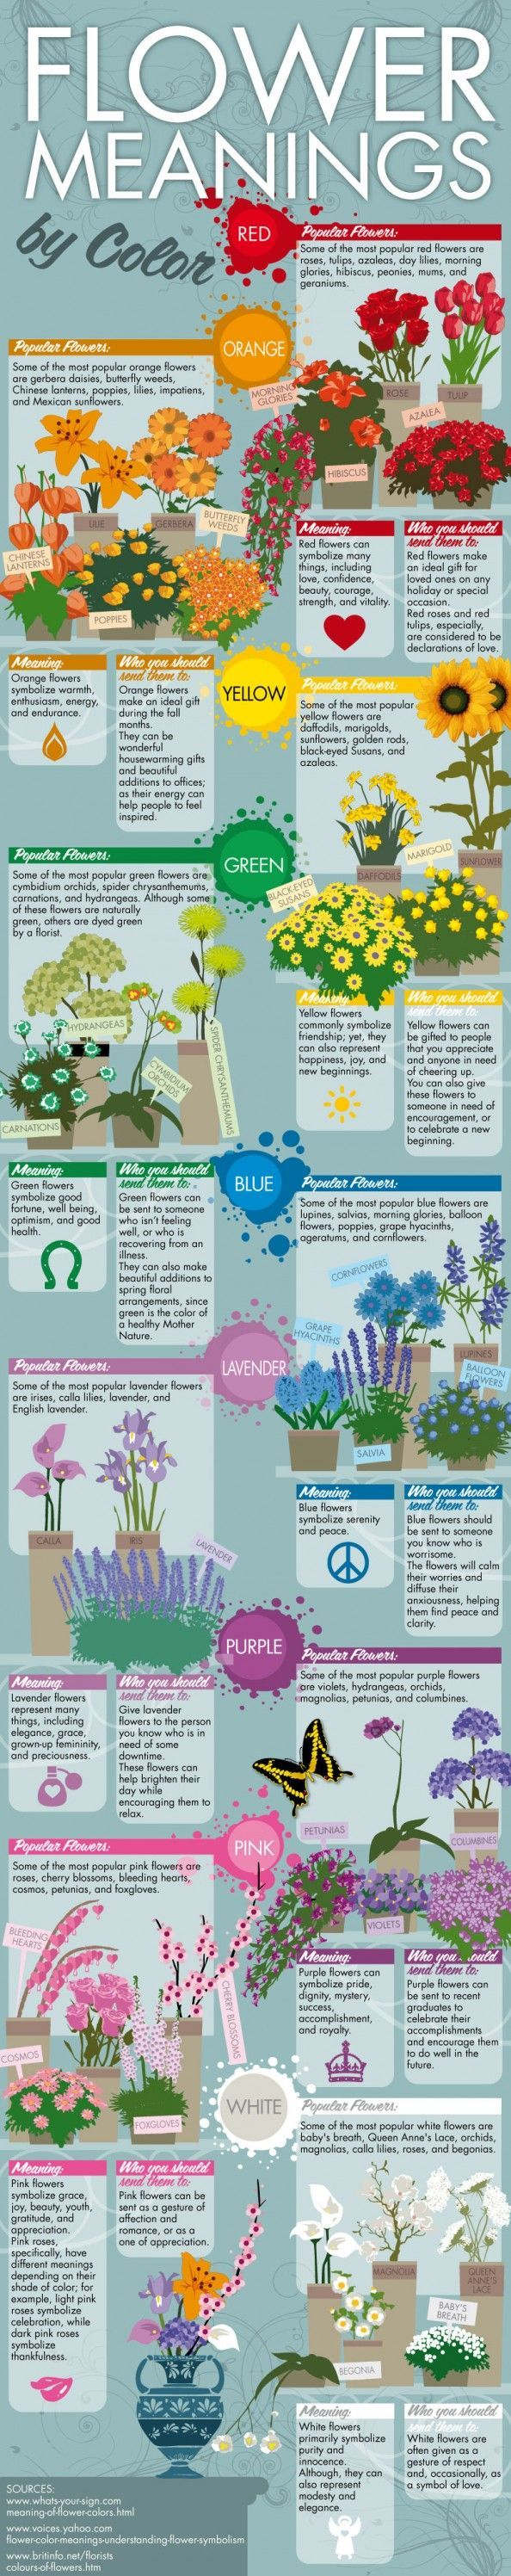 best Garden and Grilling images on Pinterest Gardening